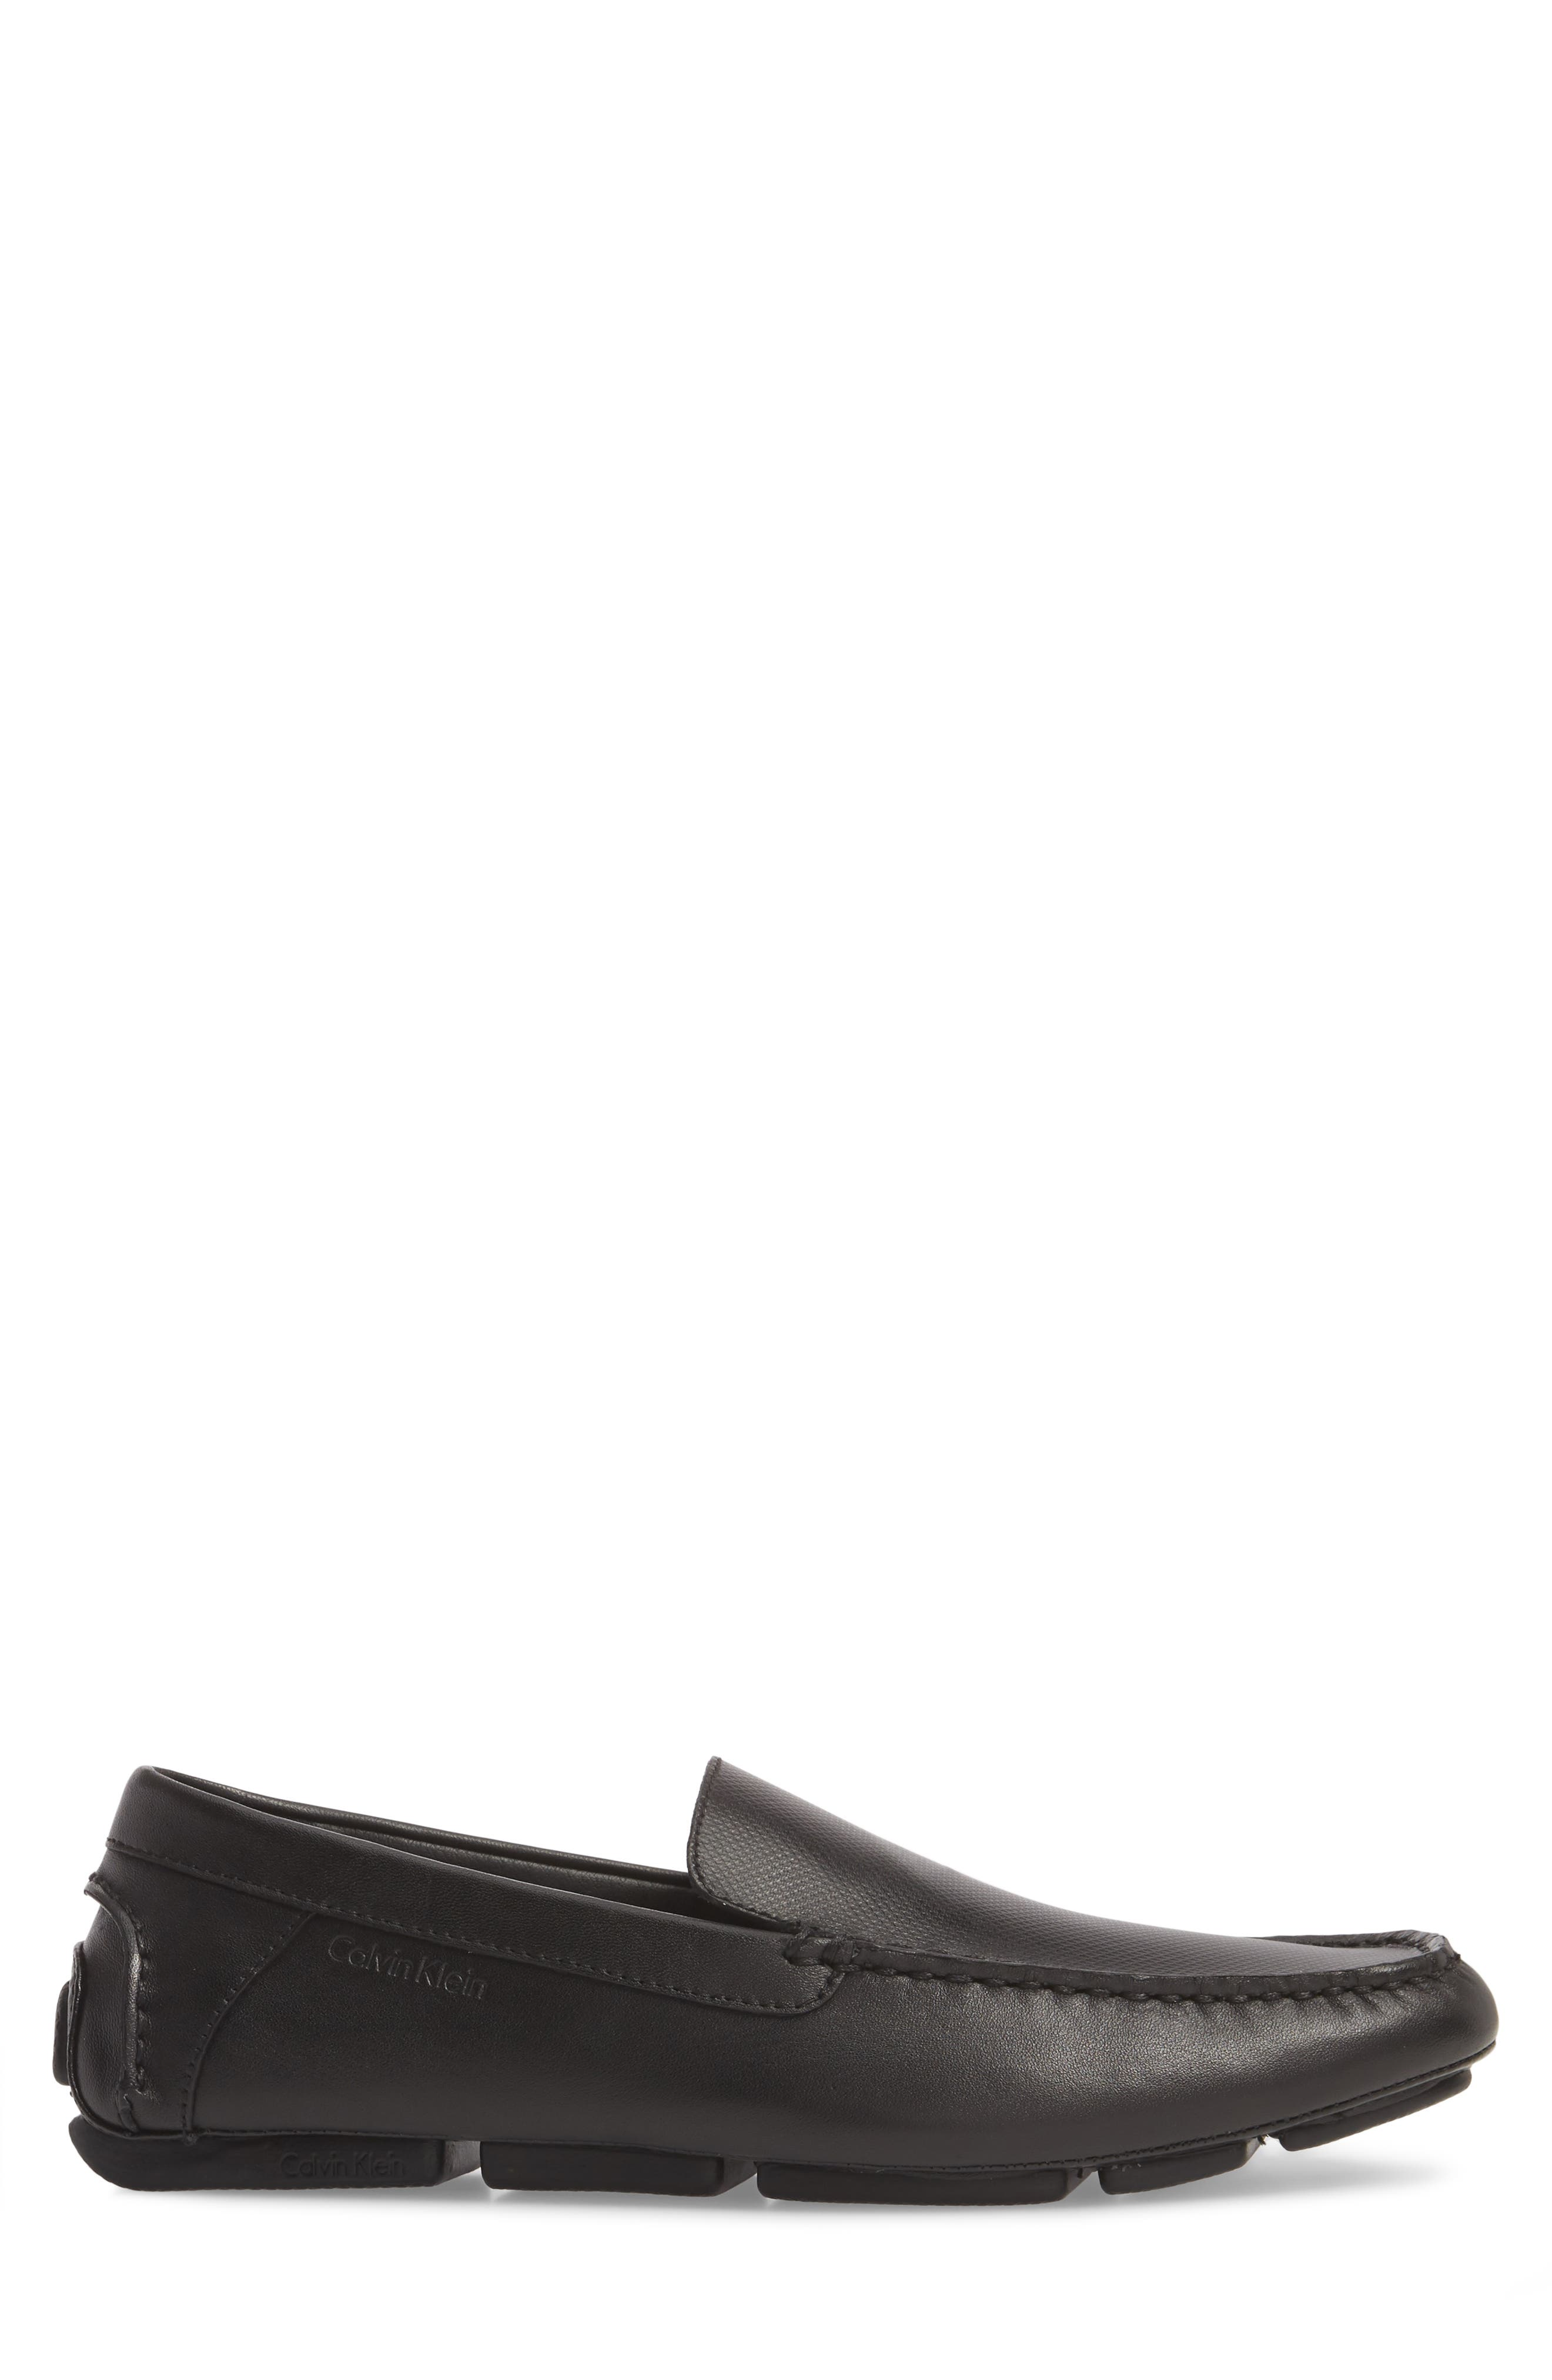 Miguel Textured Driving Loafer,                             Alternate thumbnail 3, color,                             Black Leather